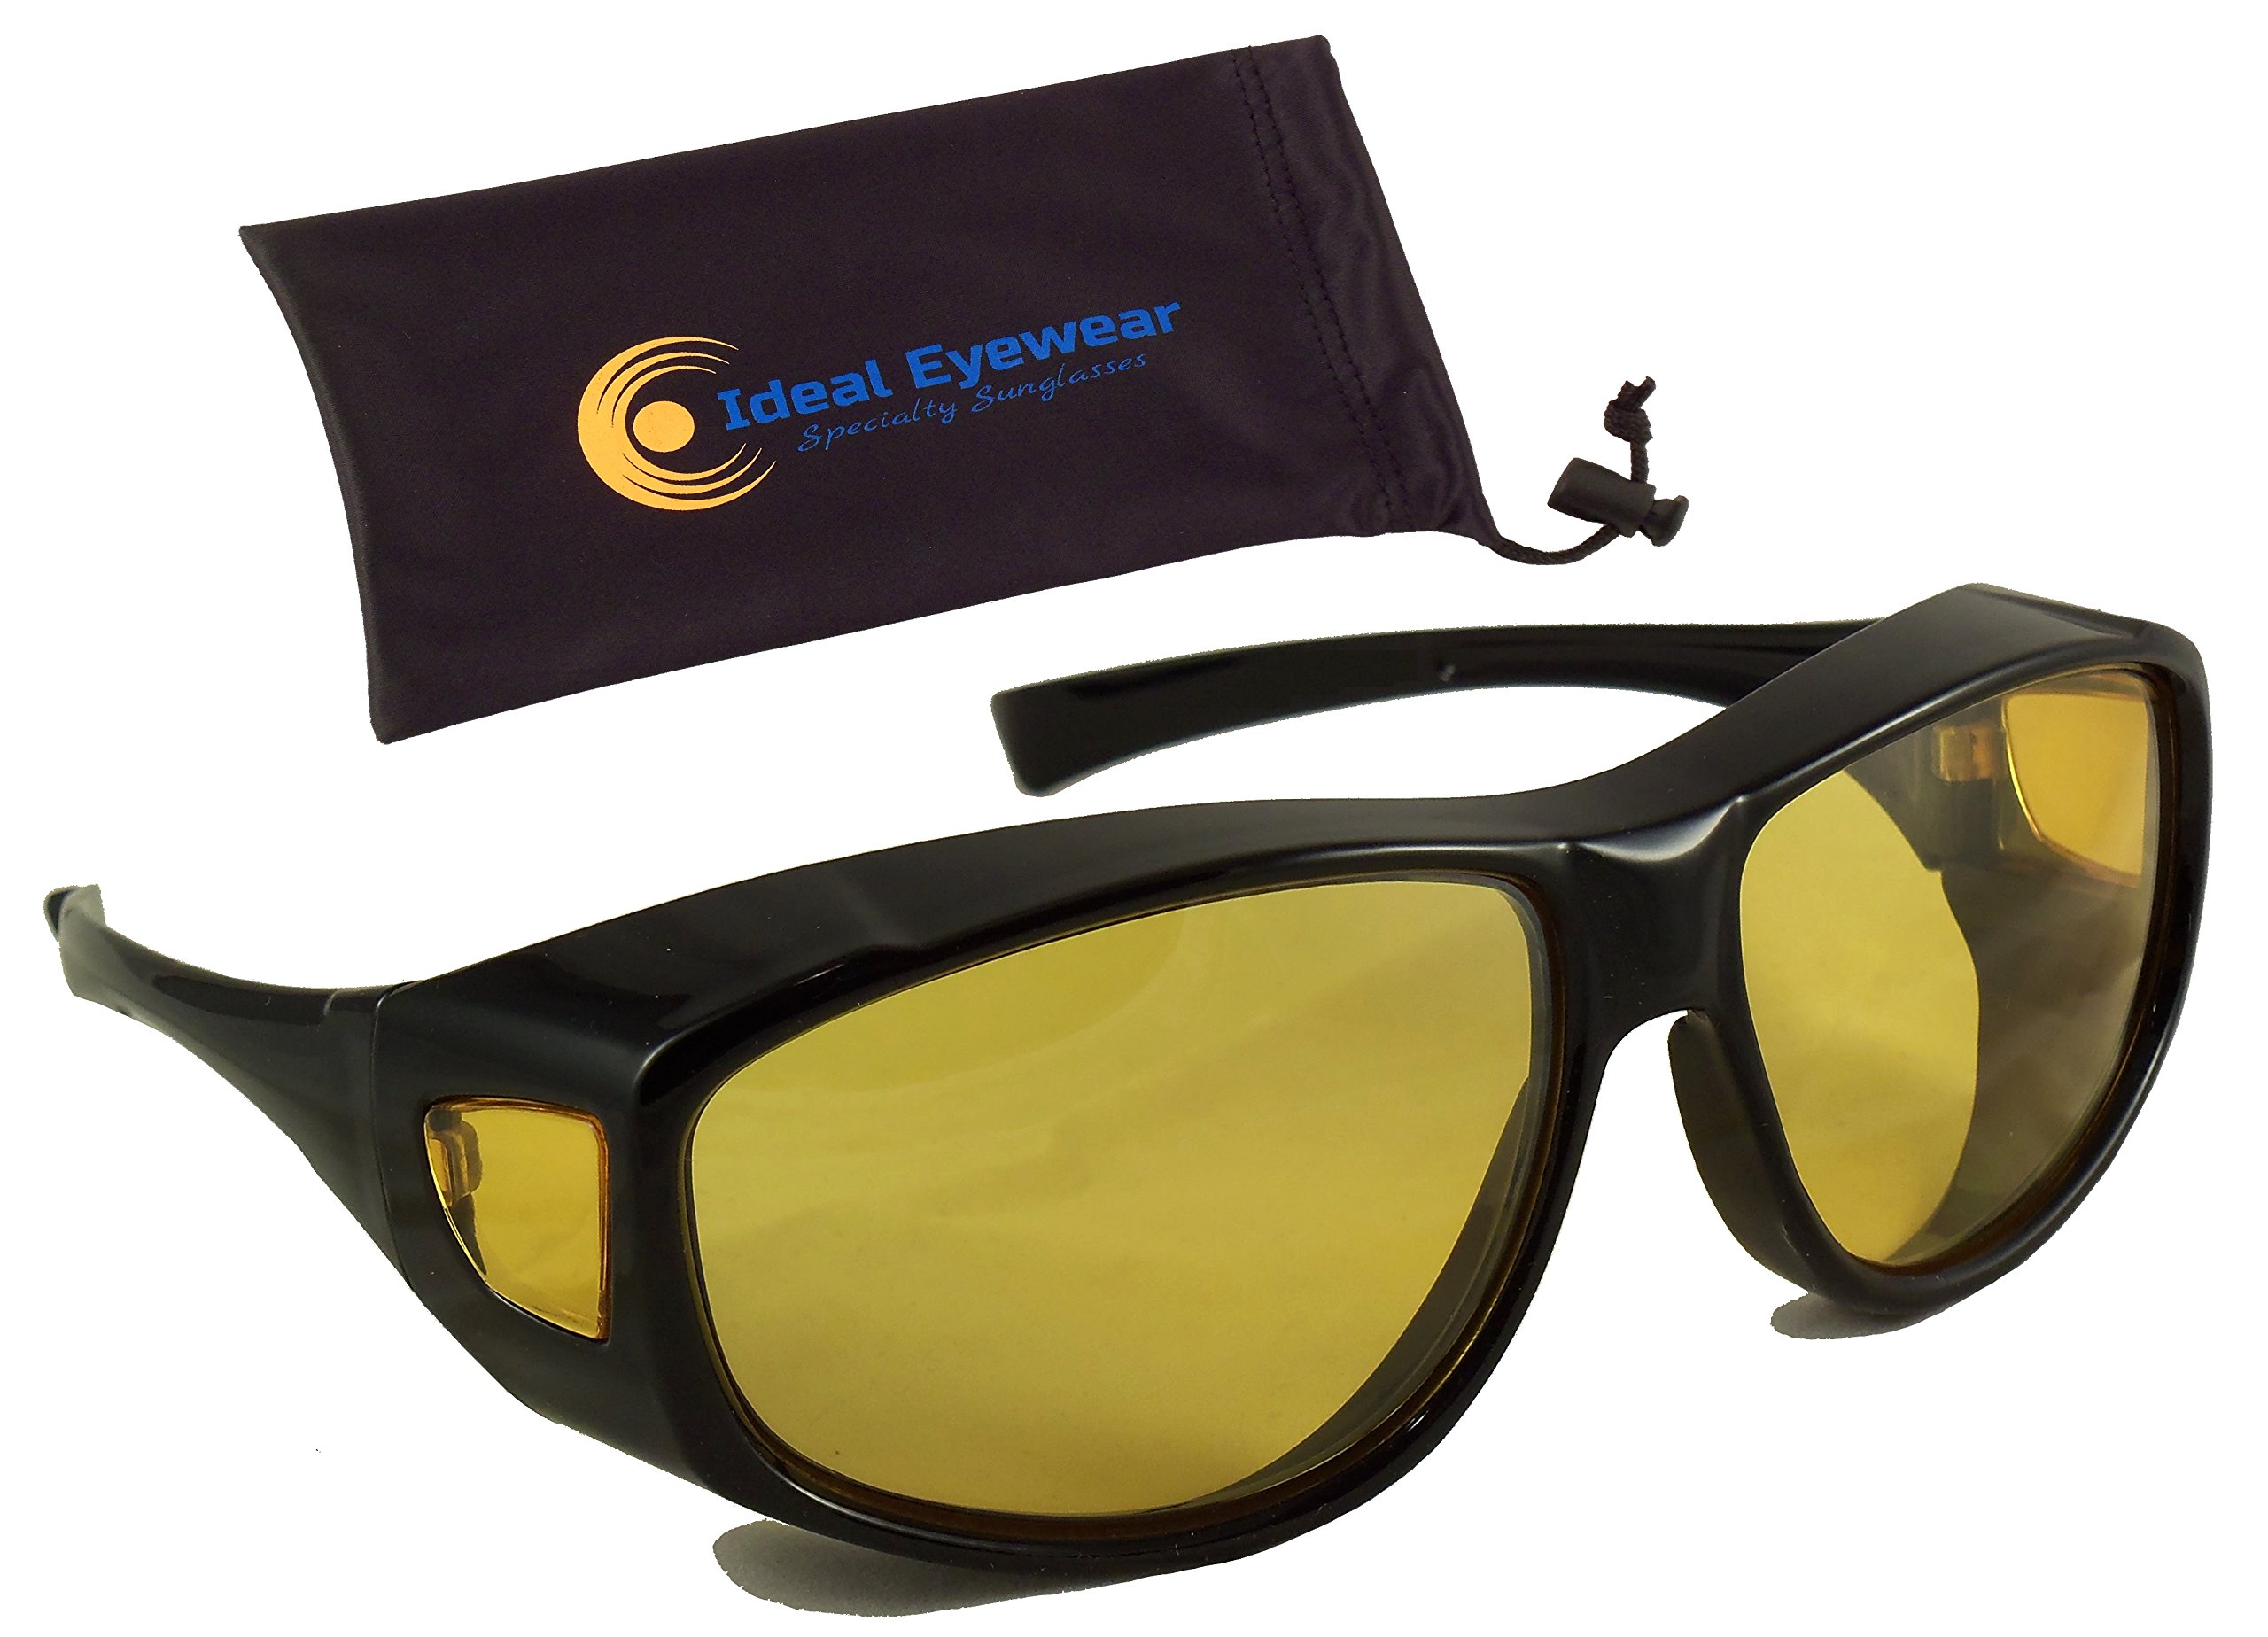 Night Driving Fit Over Glasses by Ideal Eyewear - Wear Over Prescription Glasses - Yellow Lens for Better Night Vision (Black Frame with case, Large)